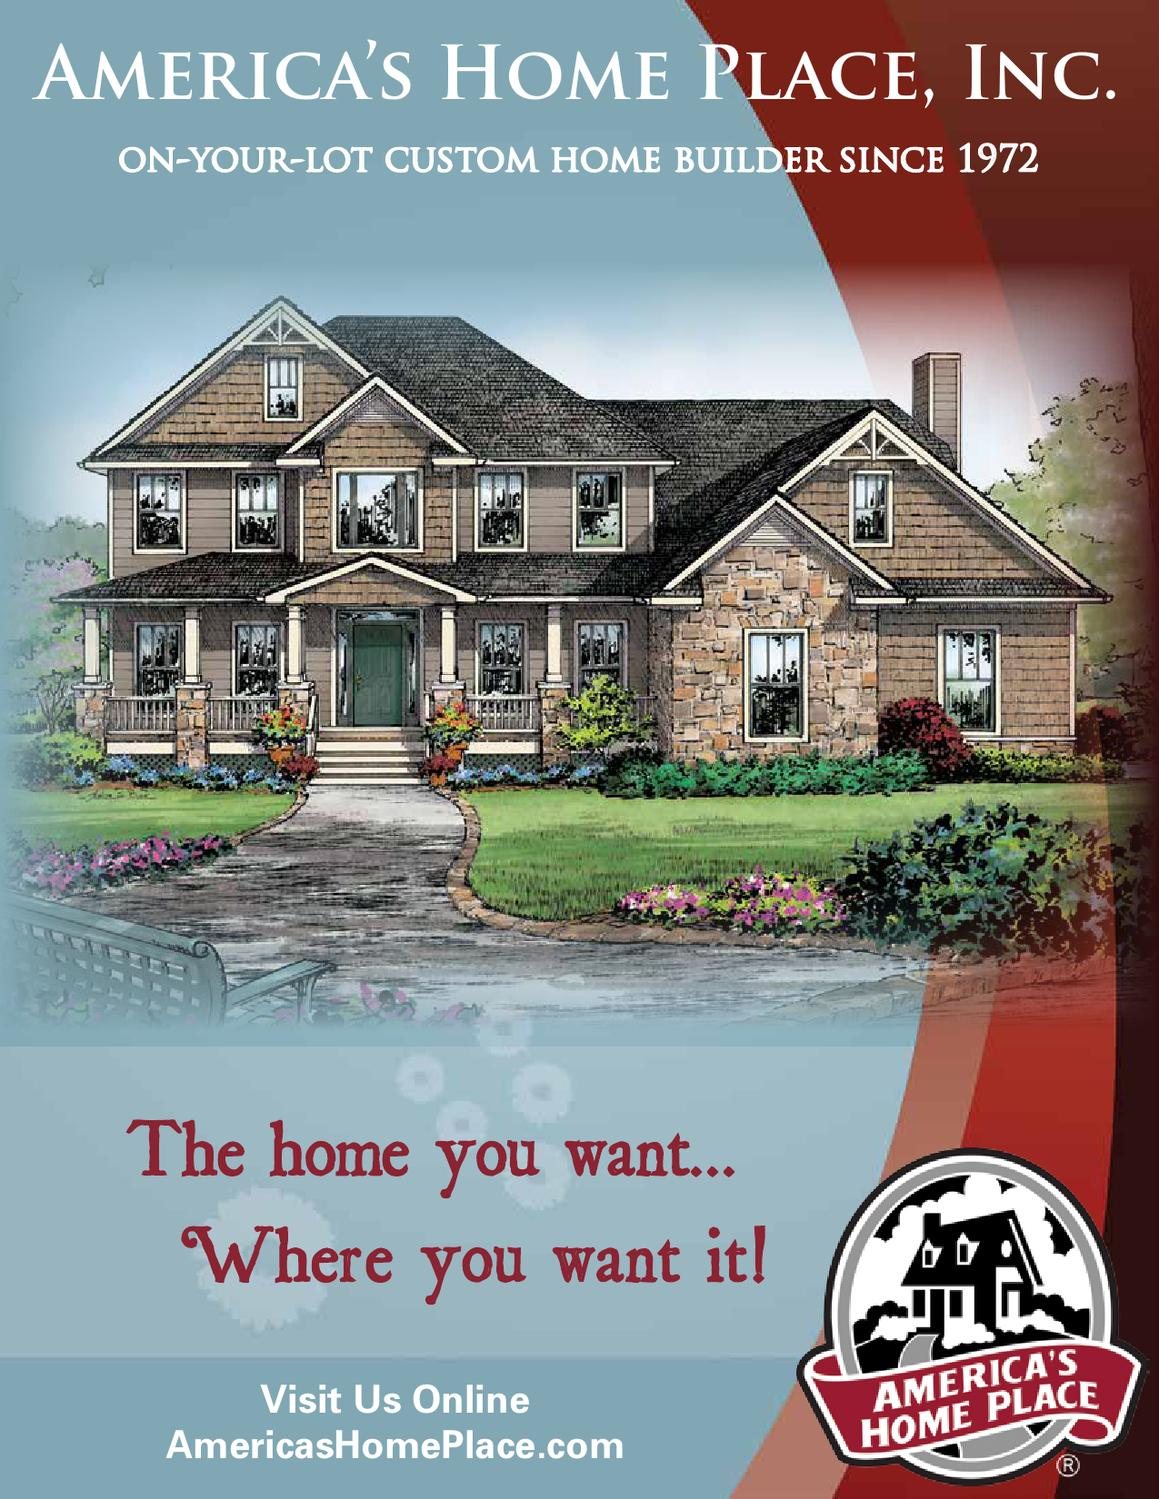 Americas home place floor plan book by donny jimerson issuu for Americas home place plans